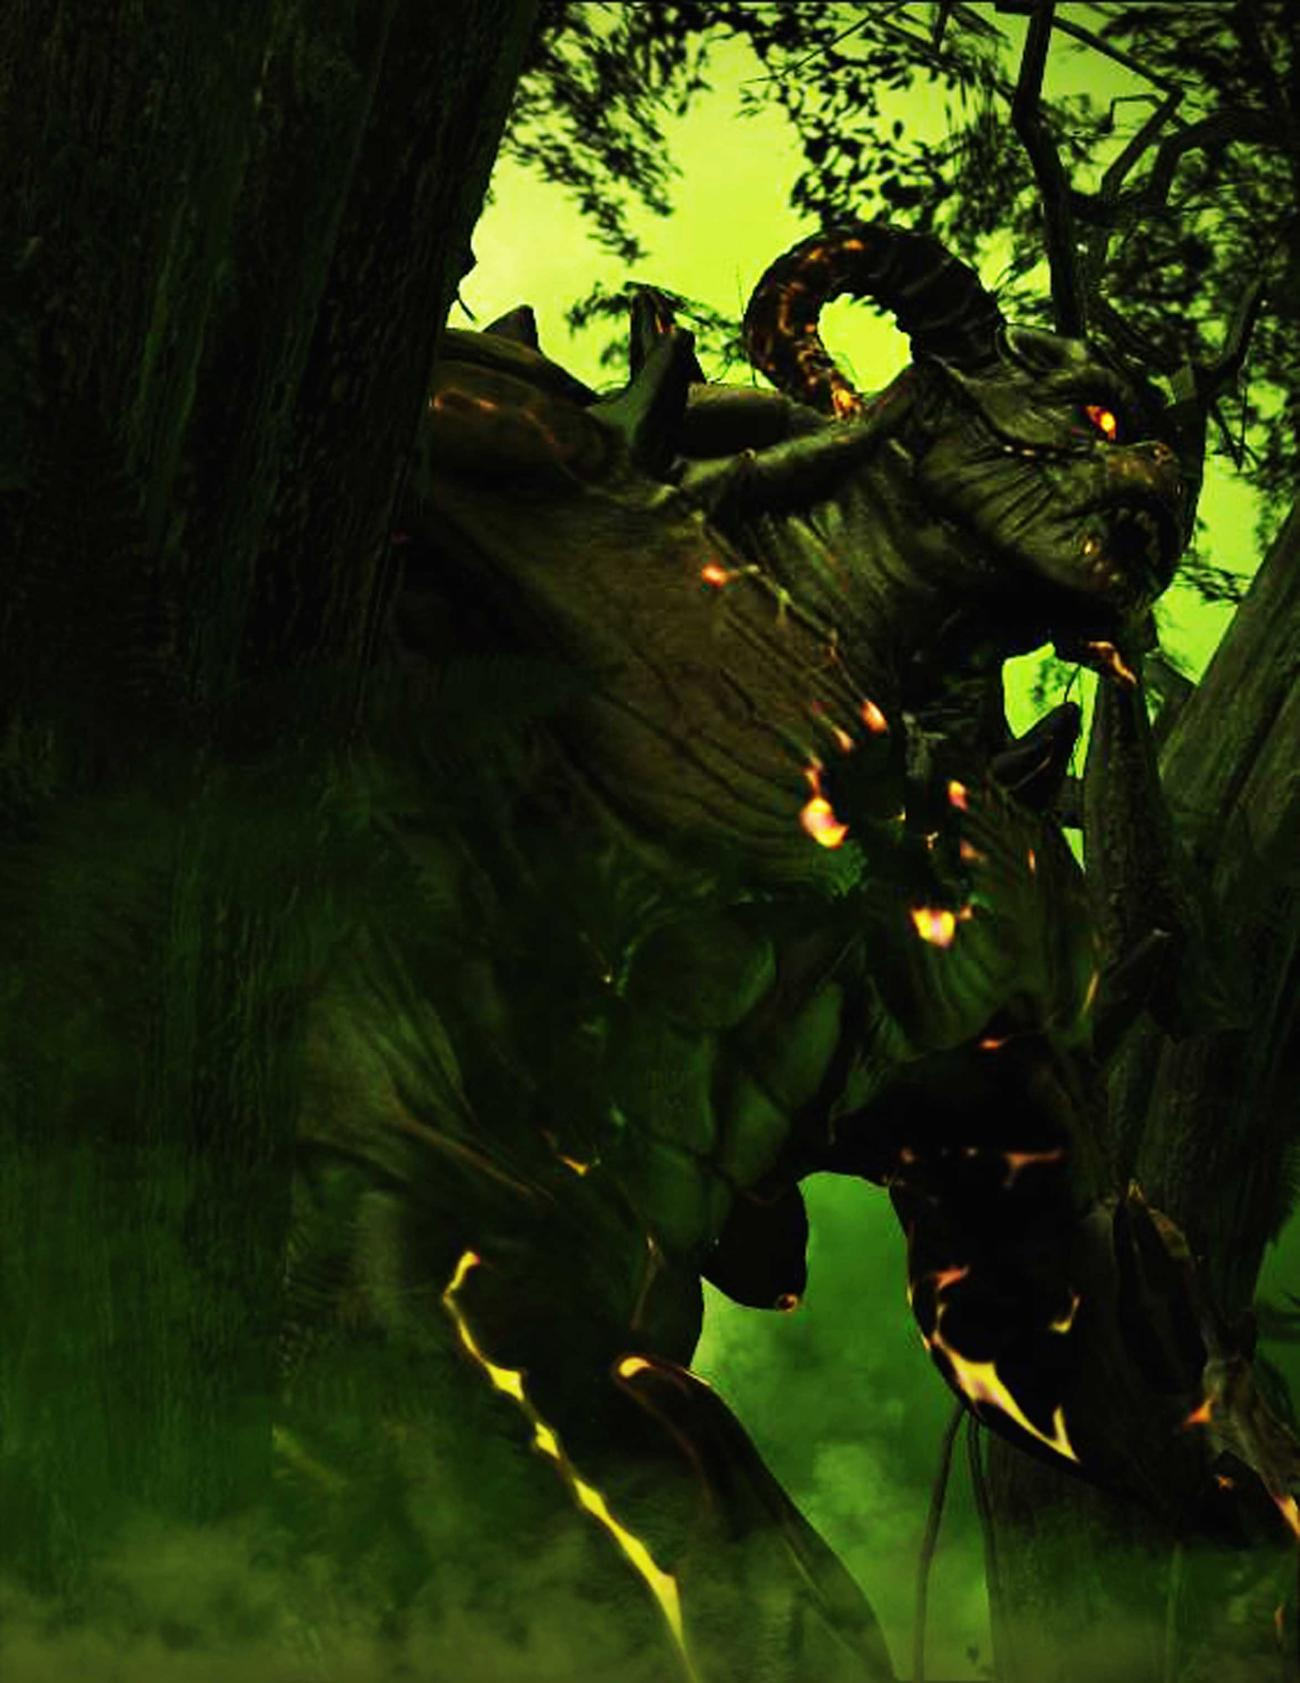 Guardian of the Emerald Forest